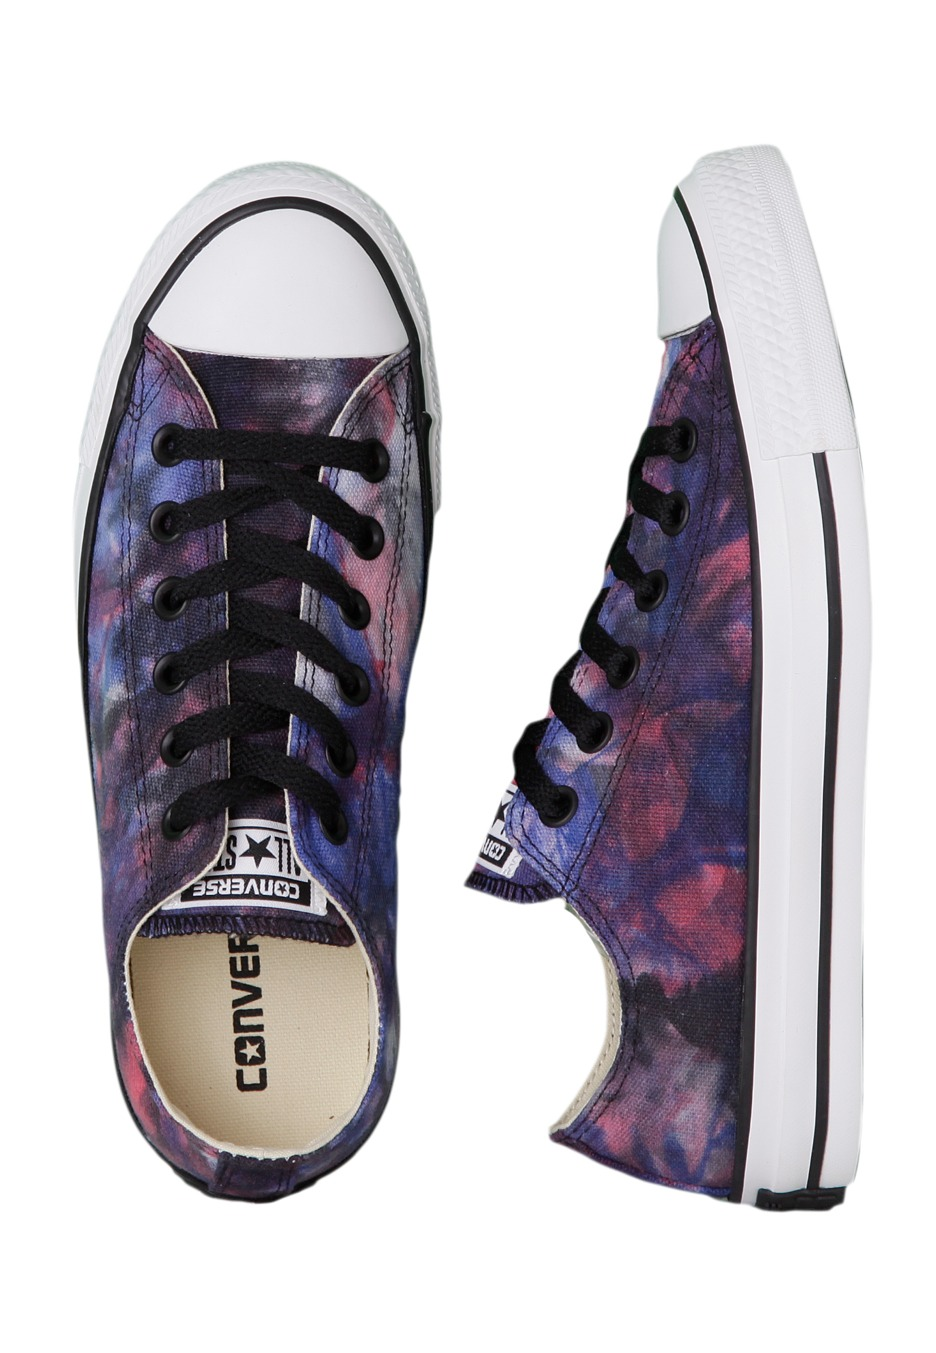 c357baa9b478 Converse - All Star Tie Dye Ox Red Radio Blue Black - Girl Shoes -  Impericon.com UK